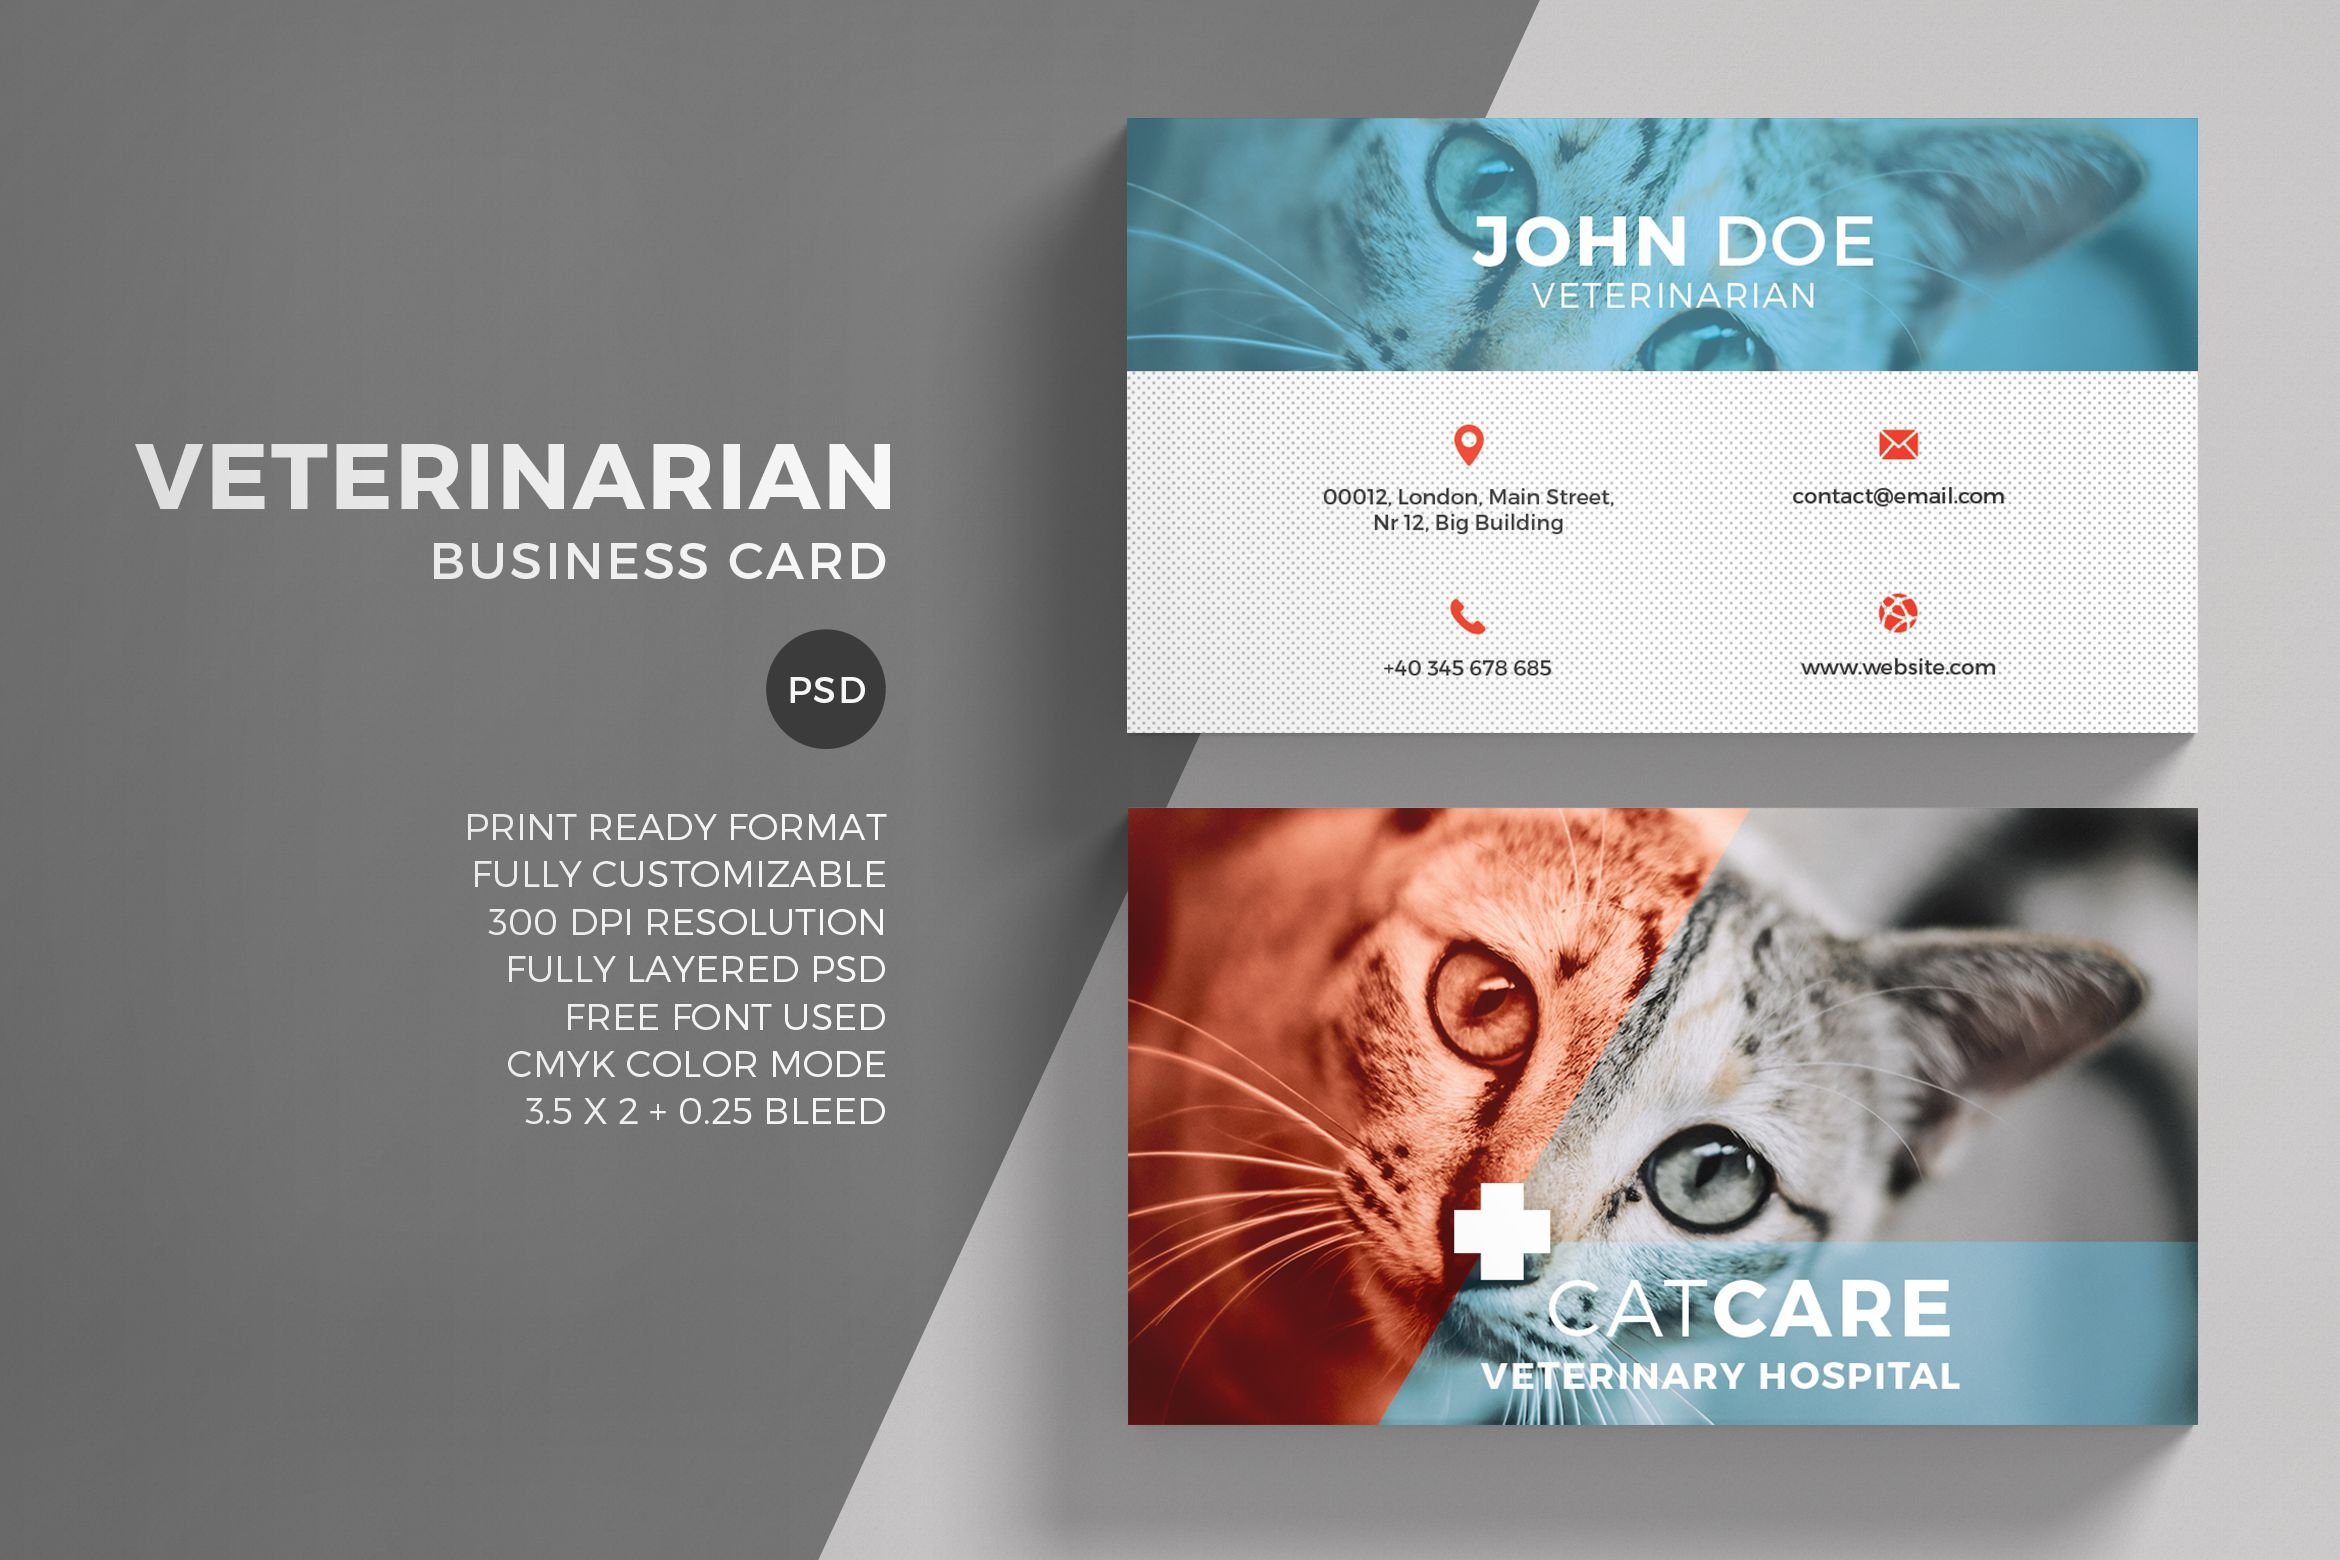 veterinarian business card template business card templates creative market. Black Bedroom Furniture Sets. Home Design Ideas